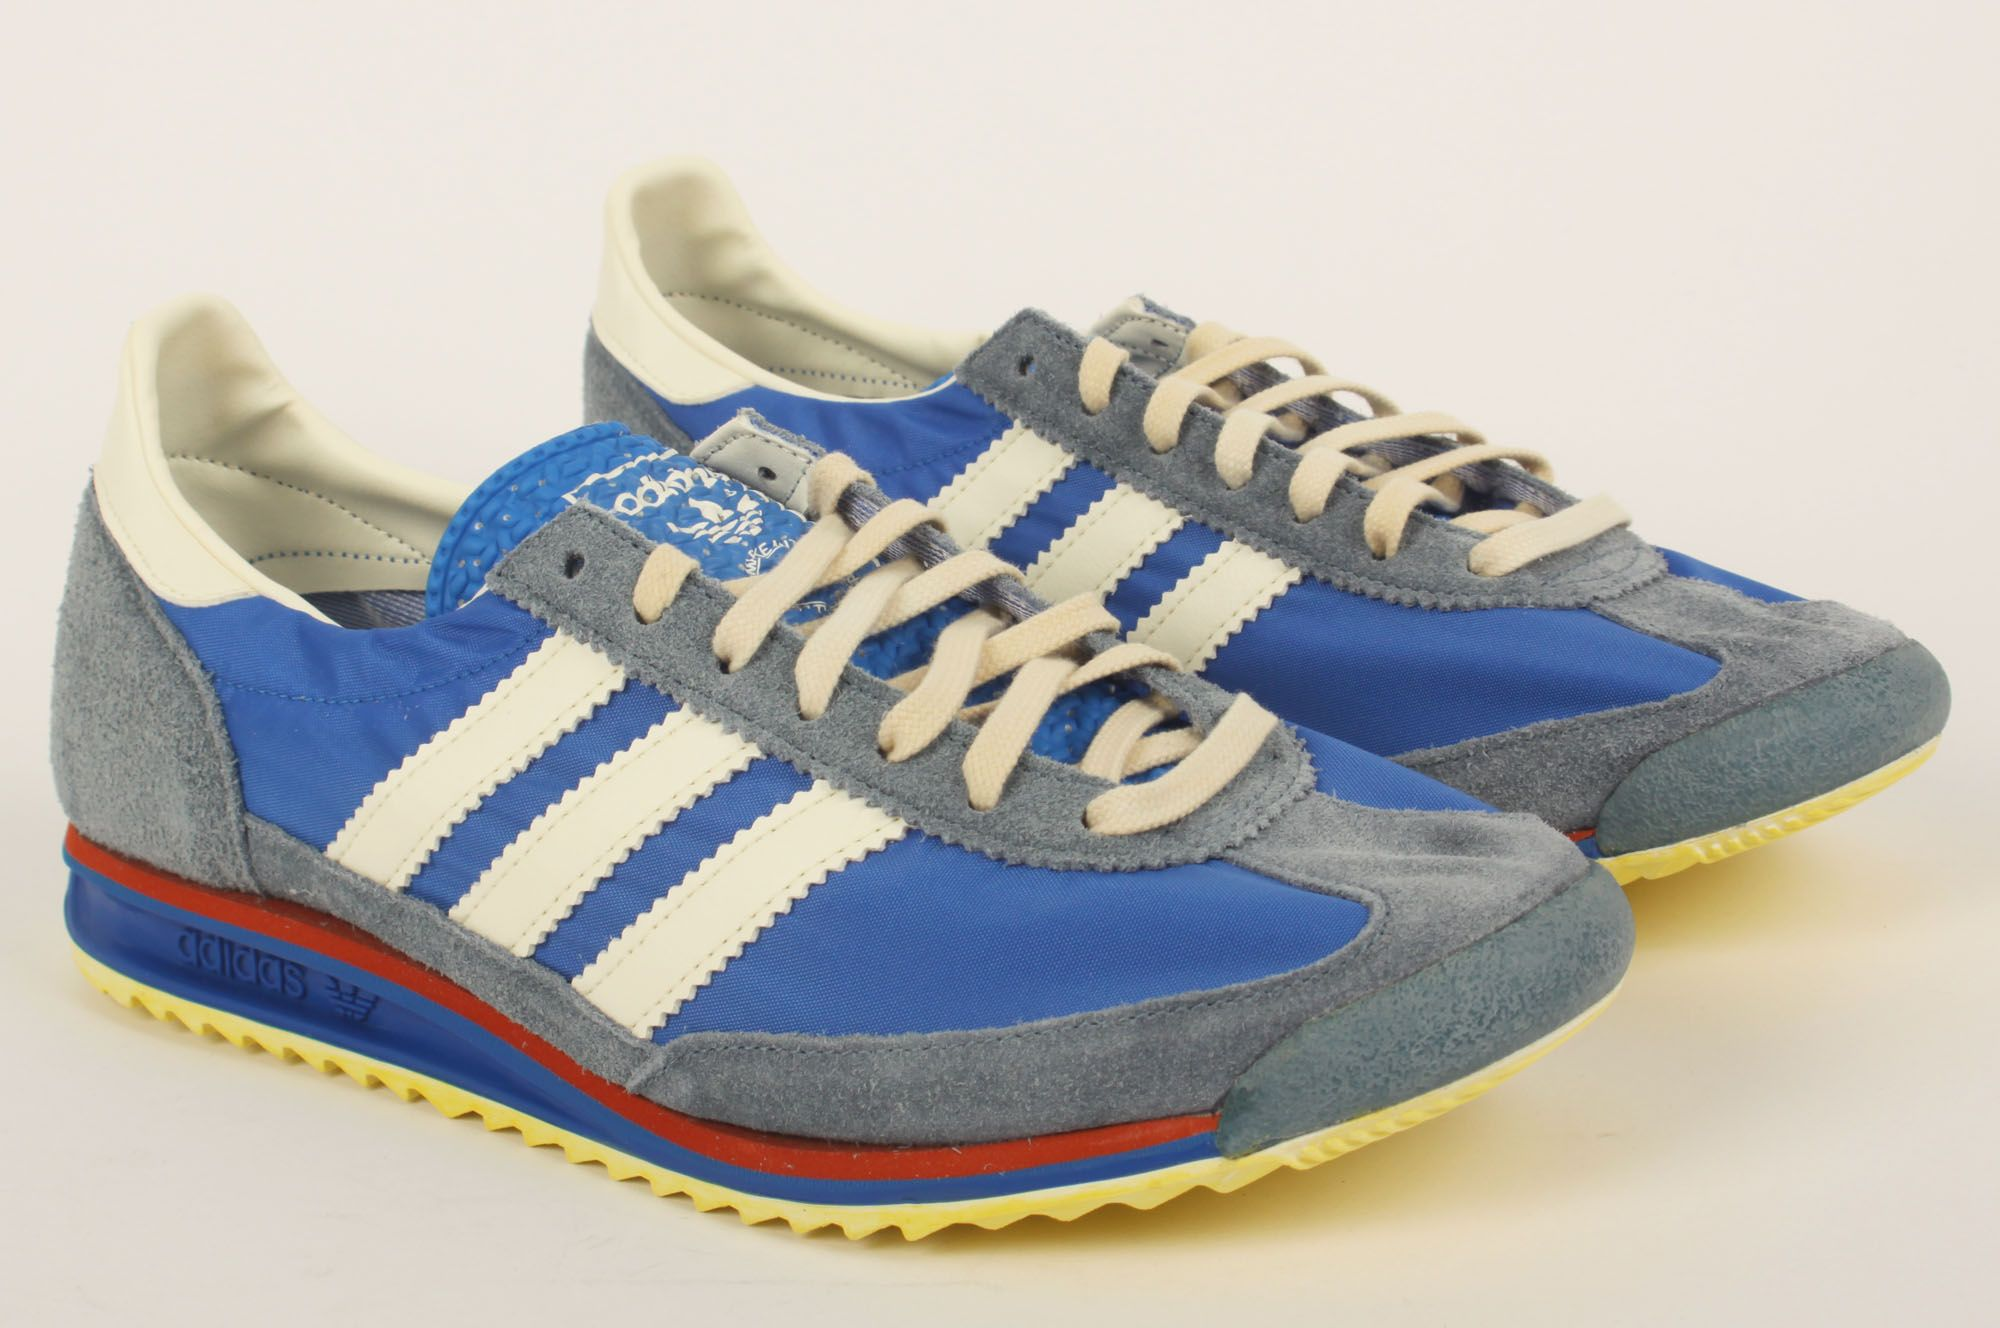 outlet store 491df bfdbe img 0014.jpg 2,000×1,328 pixels   Trainers   Pinterest   Trainers